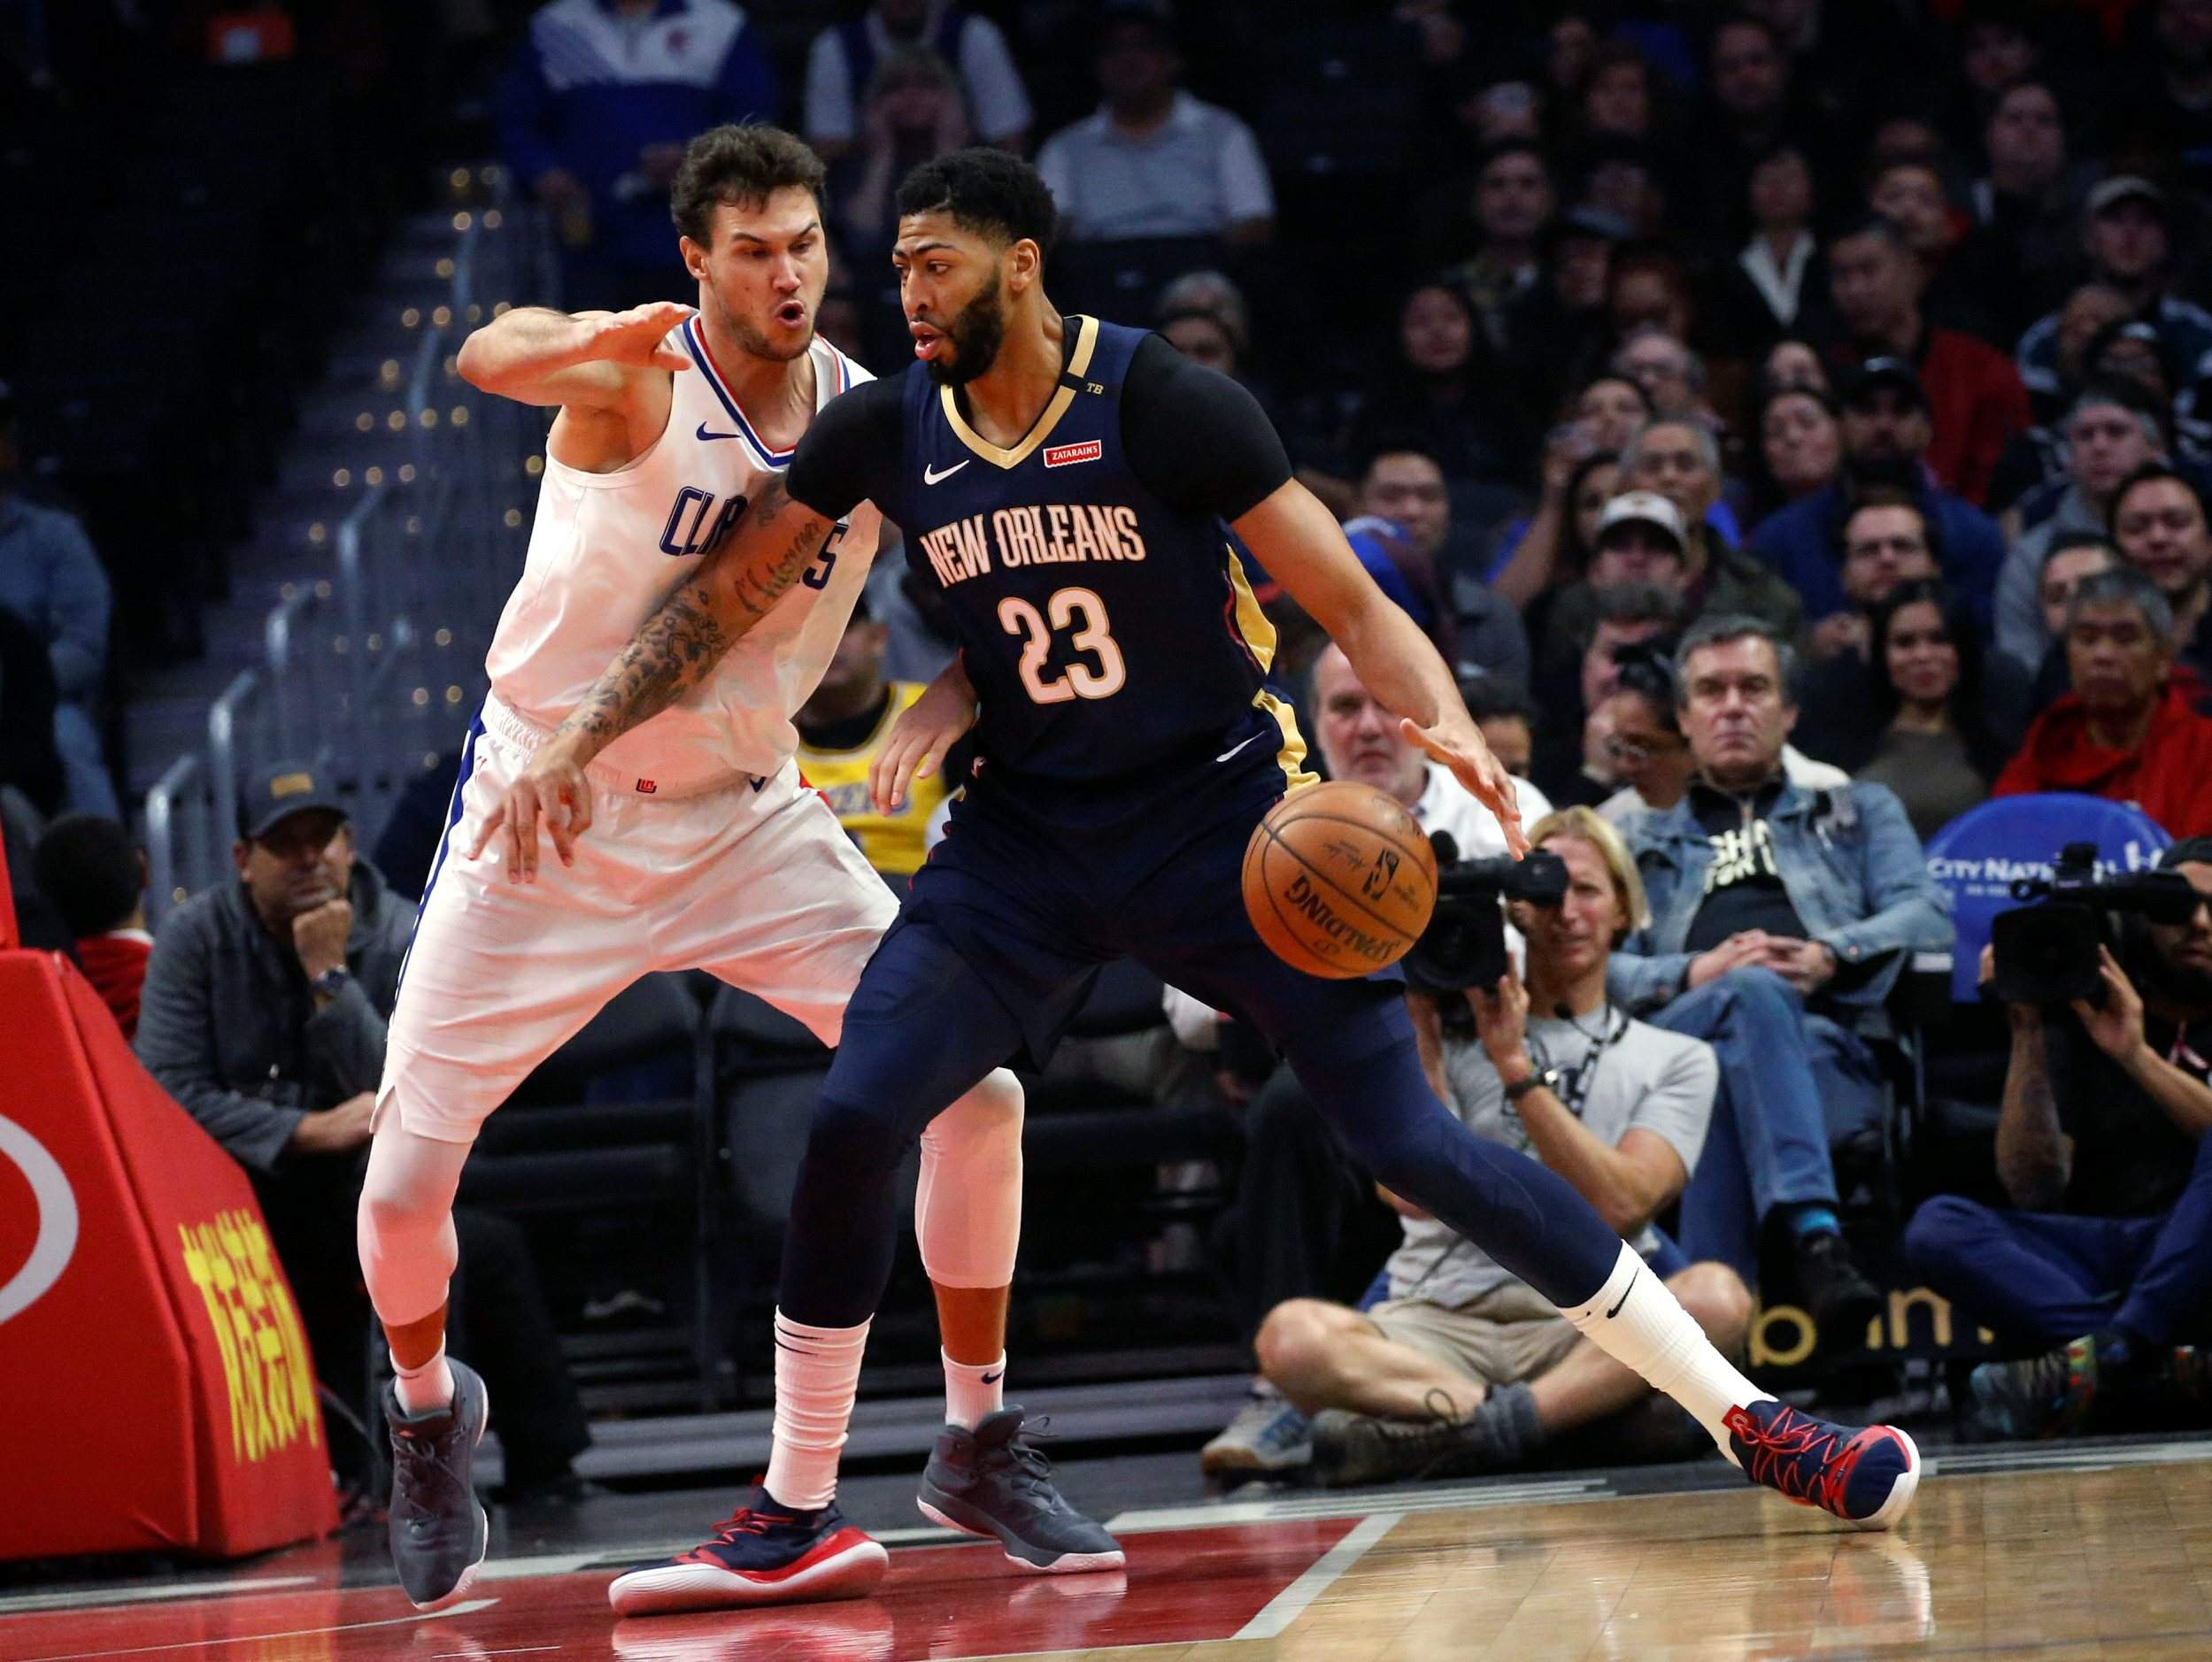 abd6133d9 Anthony Davis  agent says the five-time All-Star has told the New Orleans  Pelicans that he wants to be traded to a contending team.